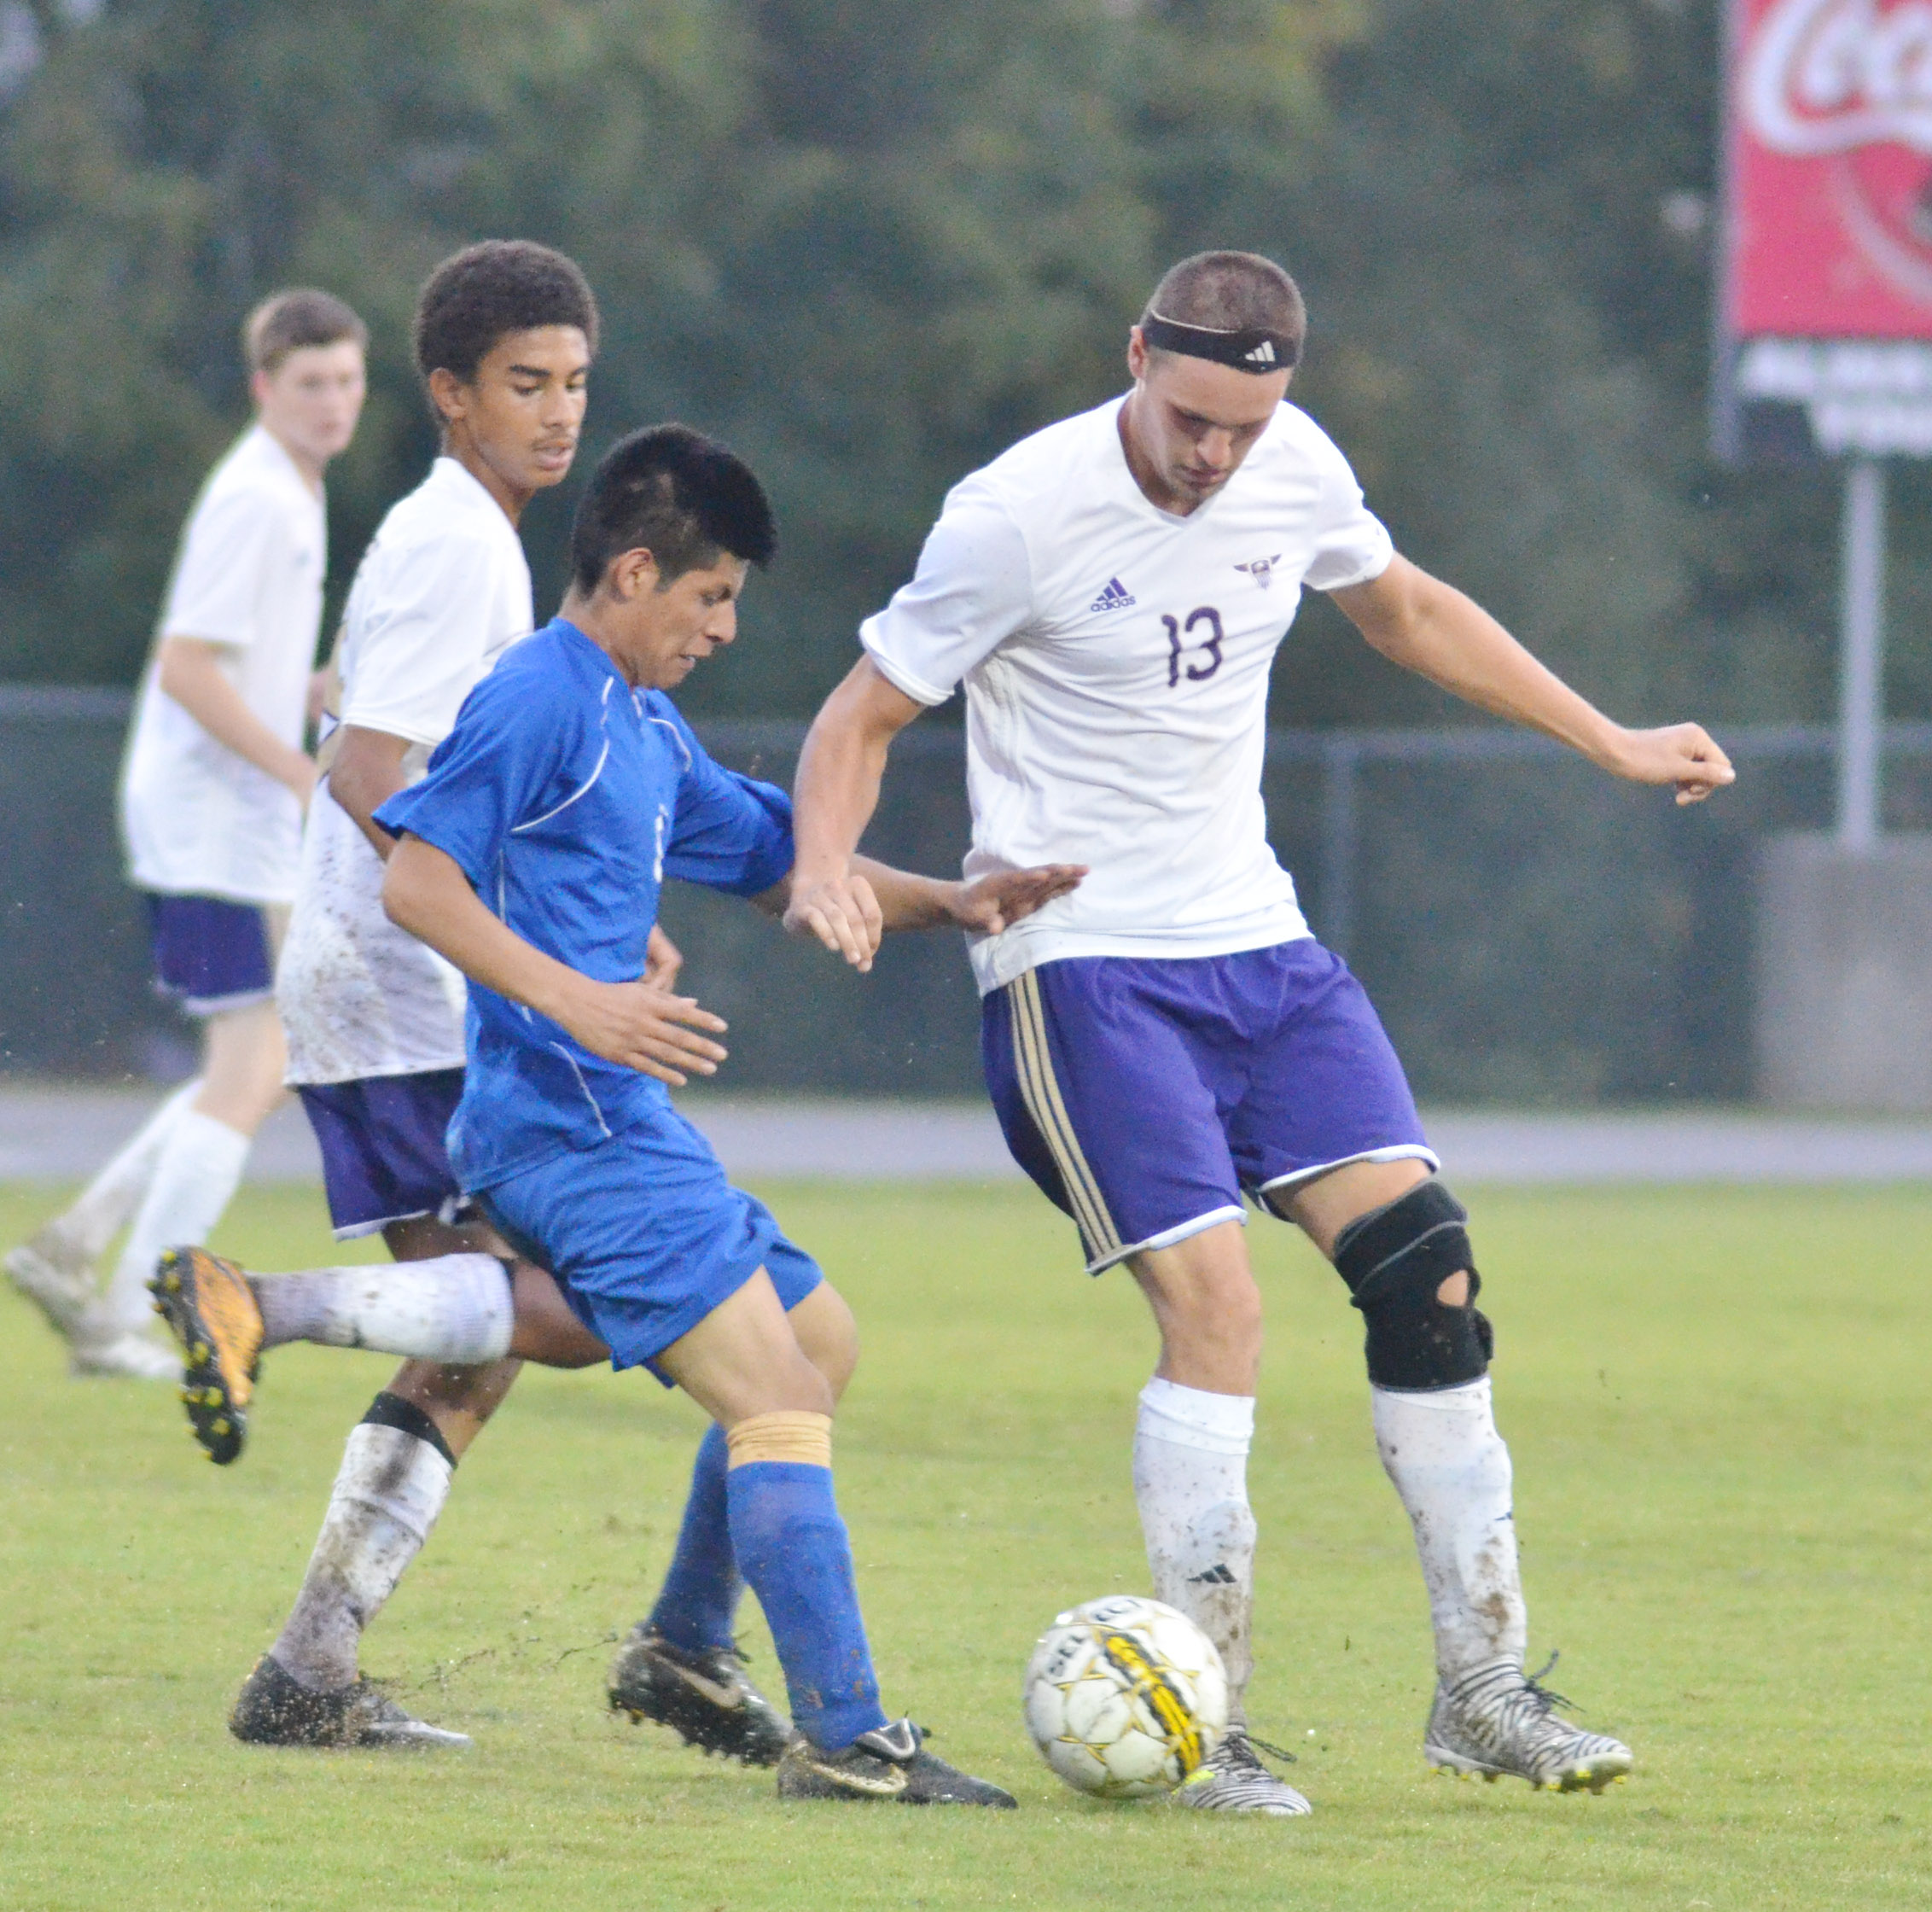 CHS senior Logan Cole protects the ball.